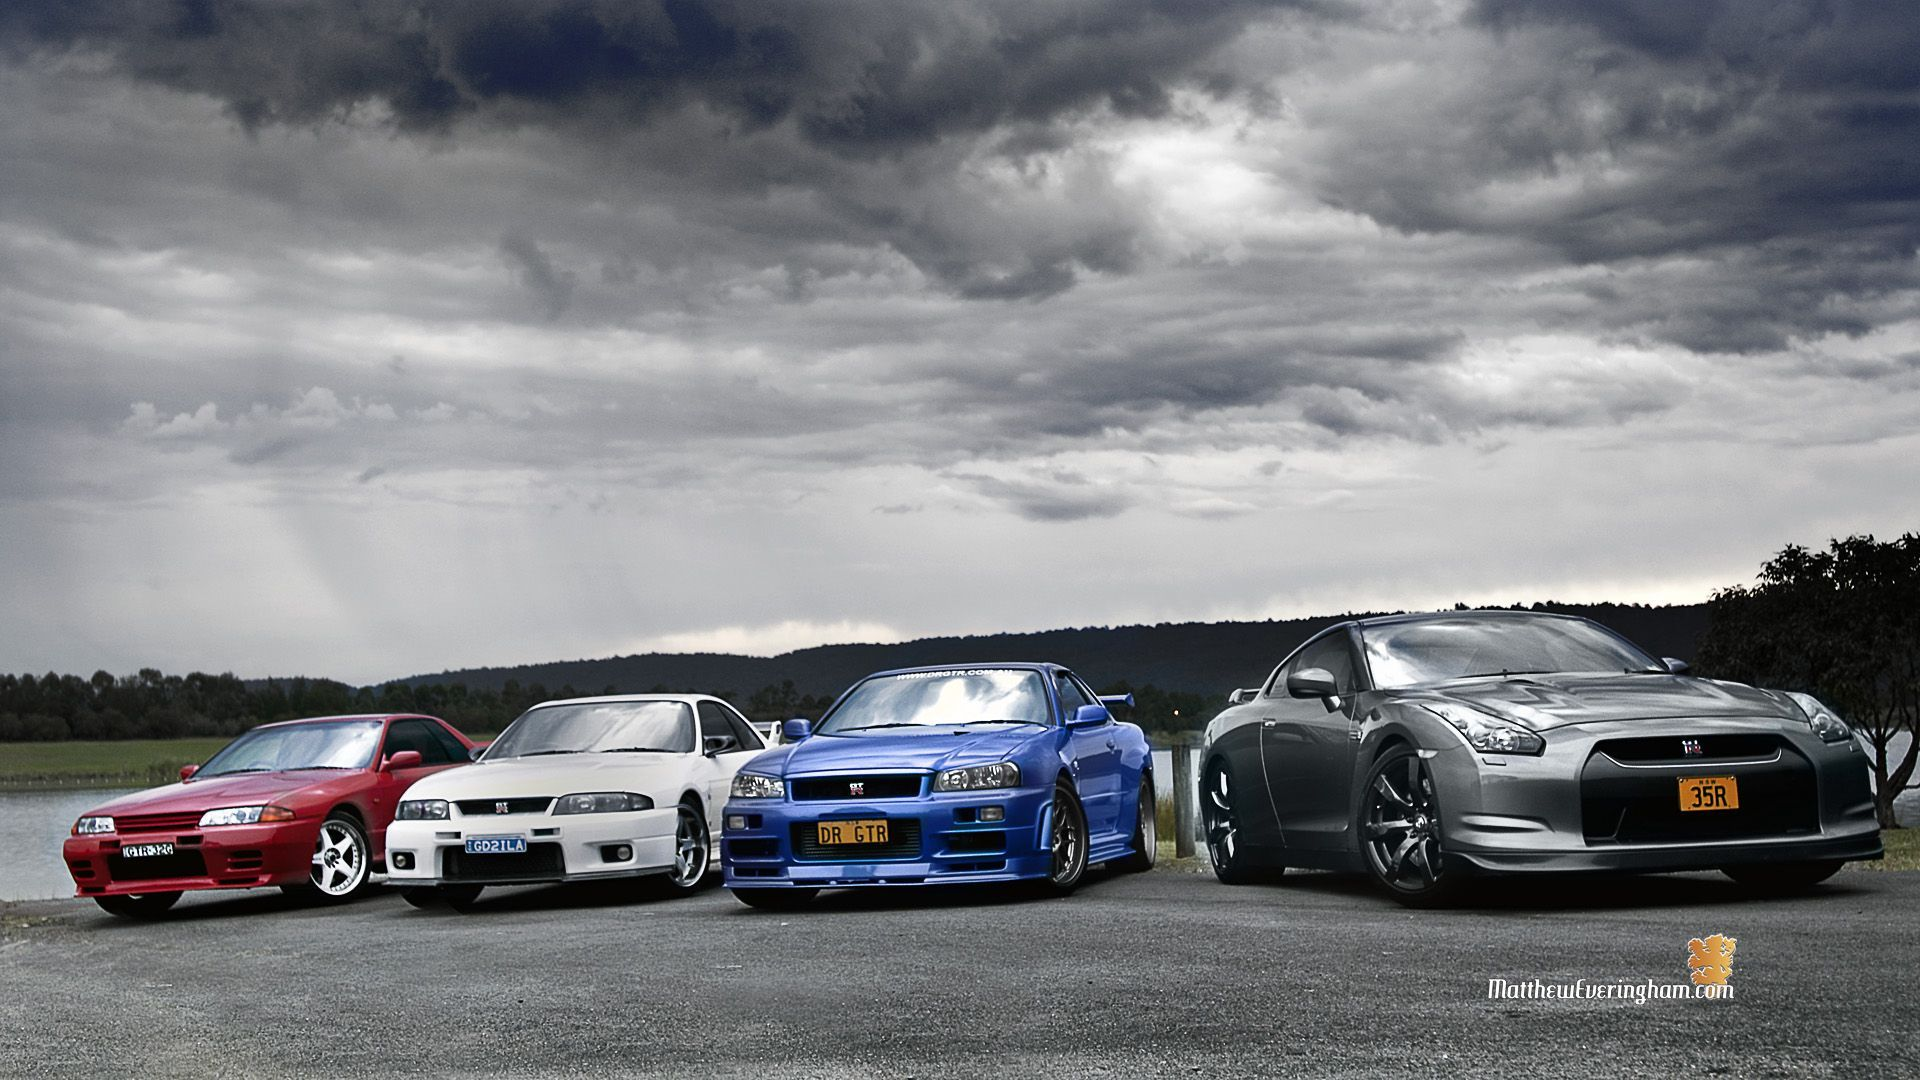 Gtr Wallpaper Full HD uOt R35 gtr, Carros, Carros clássicos